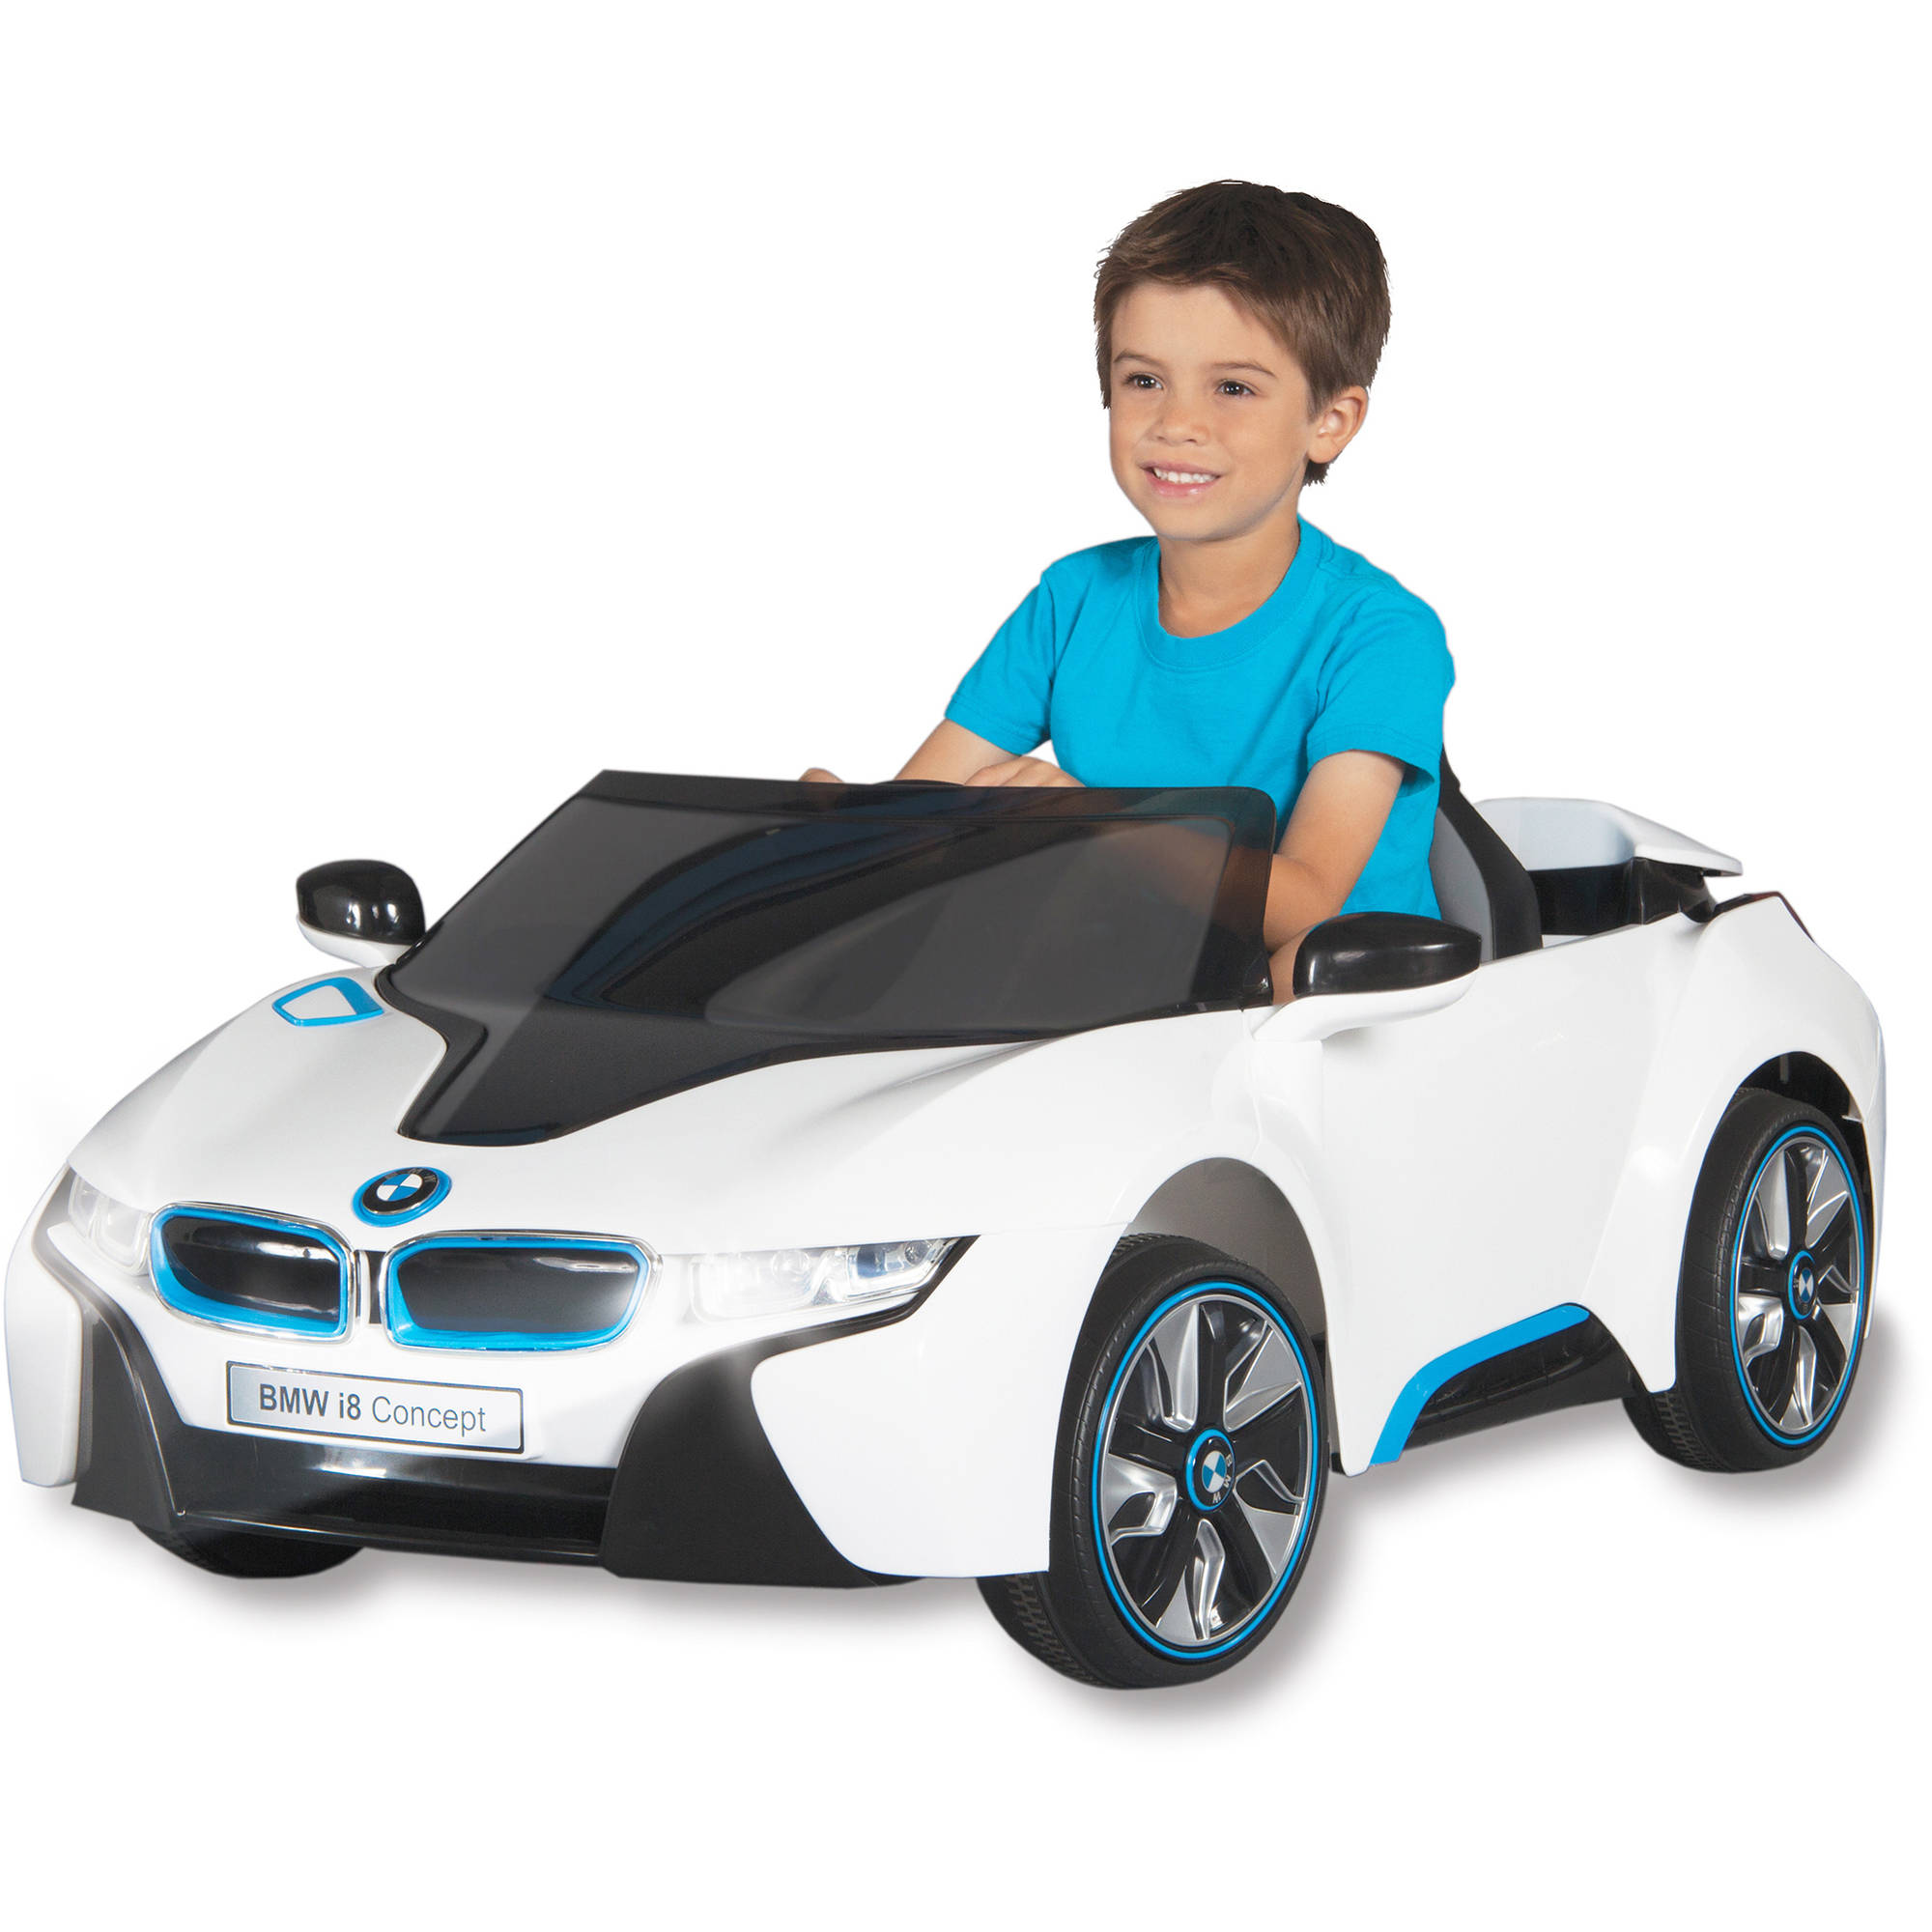 Kids Motorized Cars Beautiful Bmw I8 Concept Car 6 Volt Battery Powered Ride On Walmart